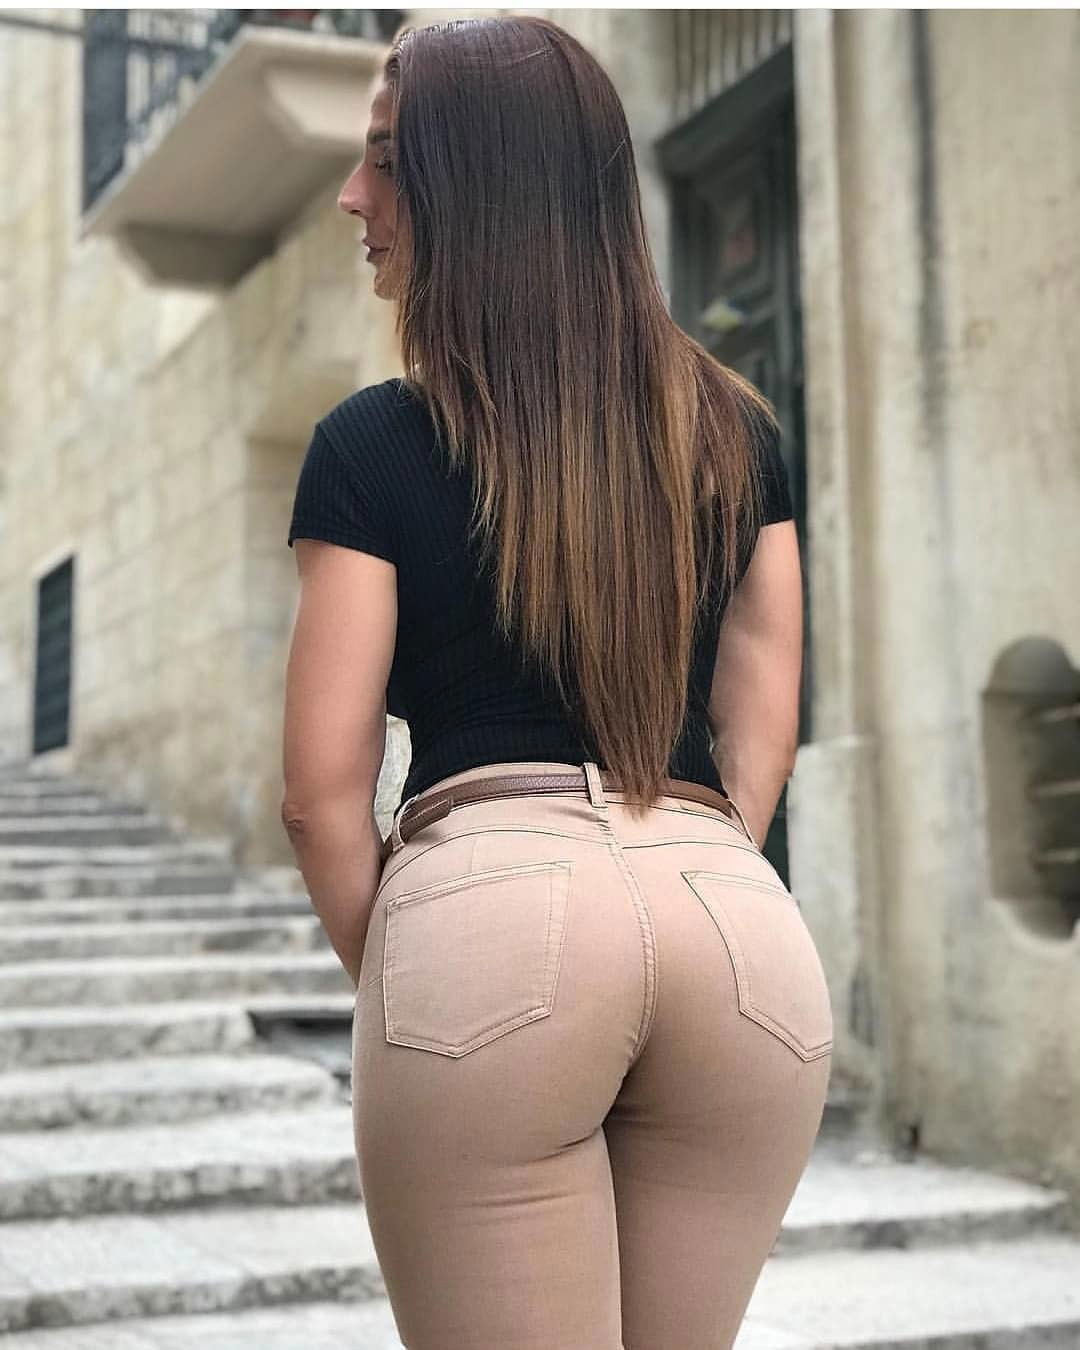 Best deals for beautiful asses in pants